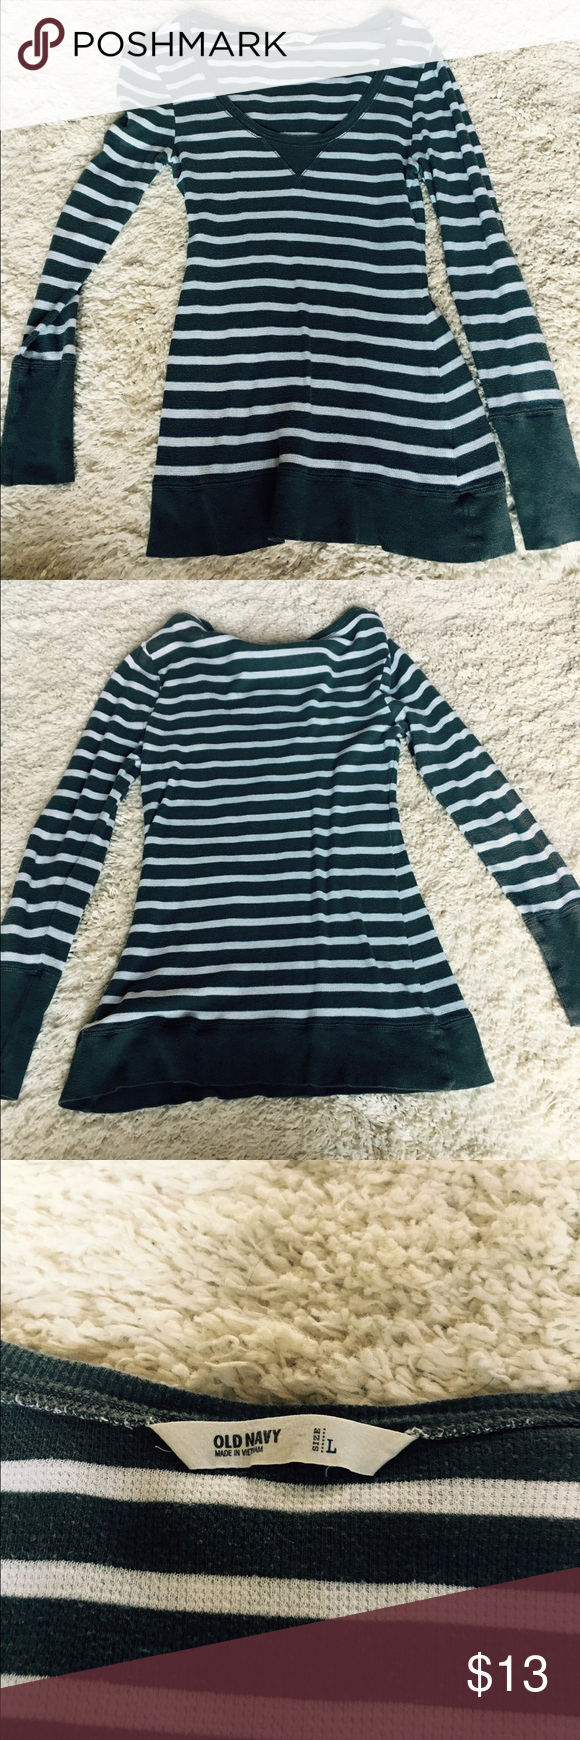 """Summer sweater Longsleeved light summer sweater in grey and white stripes with a V neckline. This top fits loosely and is a great accessory to tie around your shoulders until it gets chilly on those summer nights. Measures 29"""" from shoulder to hemline. Old Navy Sweaters V-Necks"""